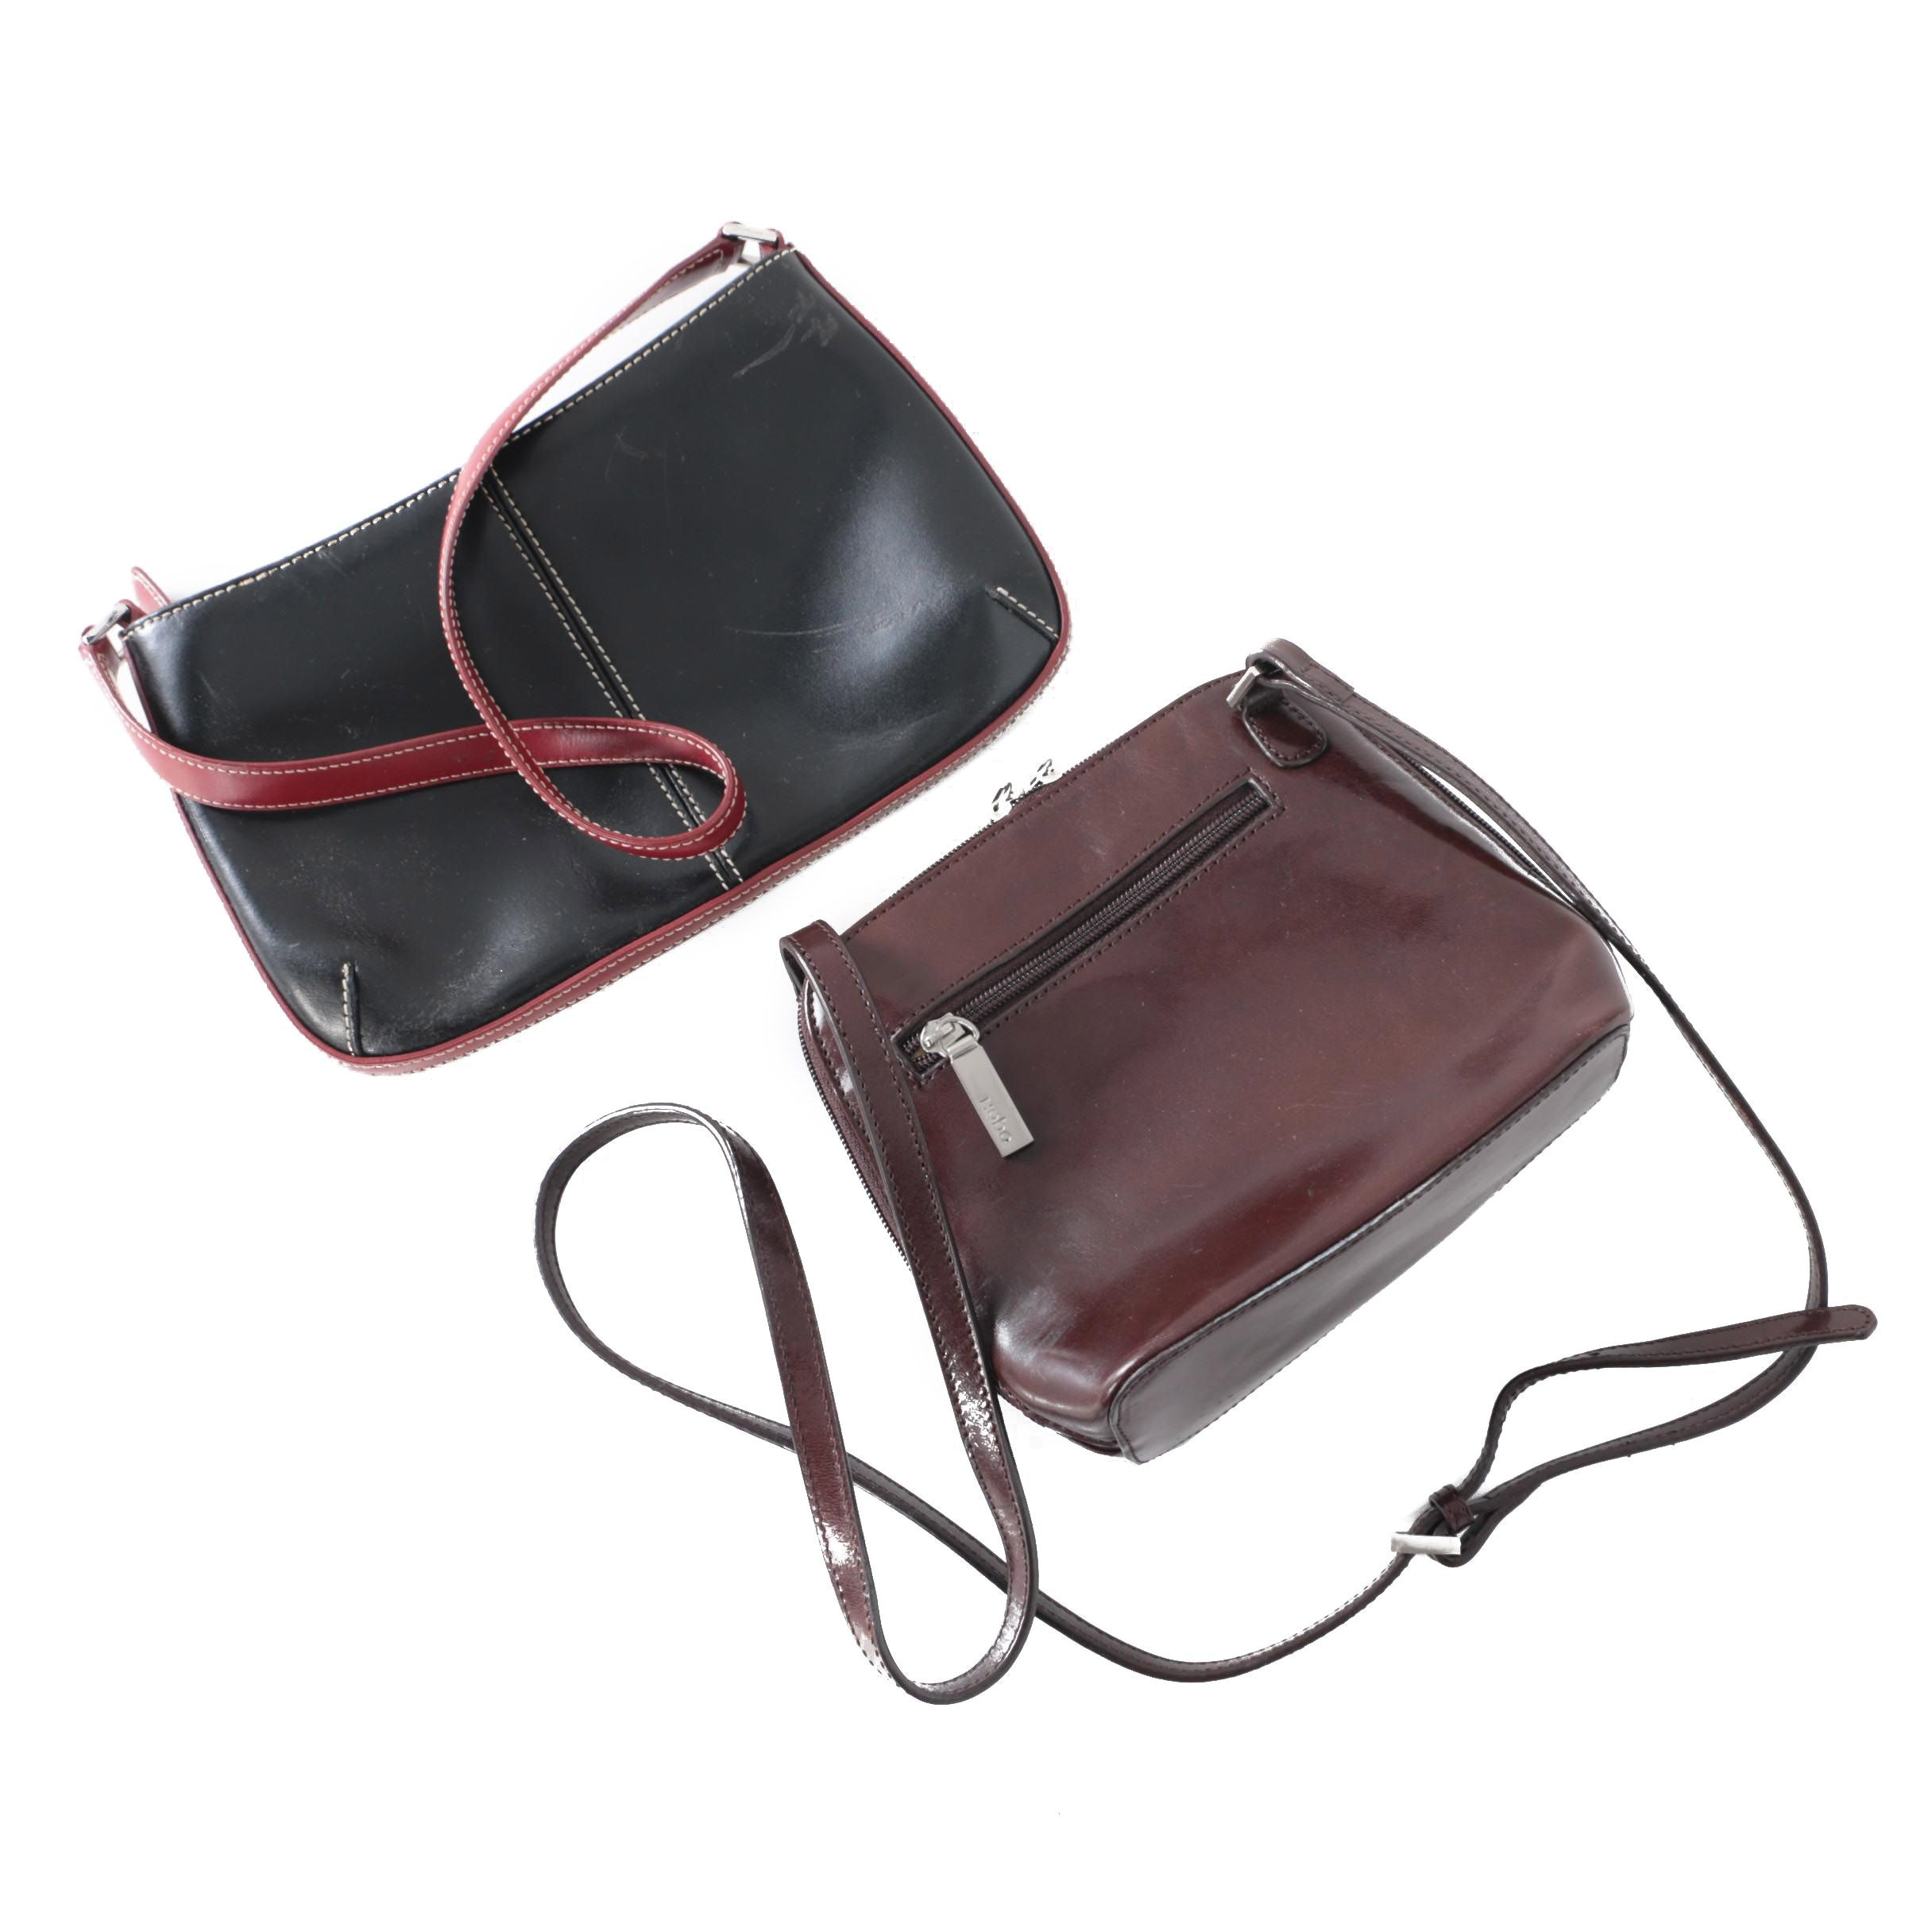 Leather Handbags including Hobo International